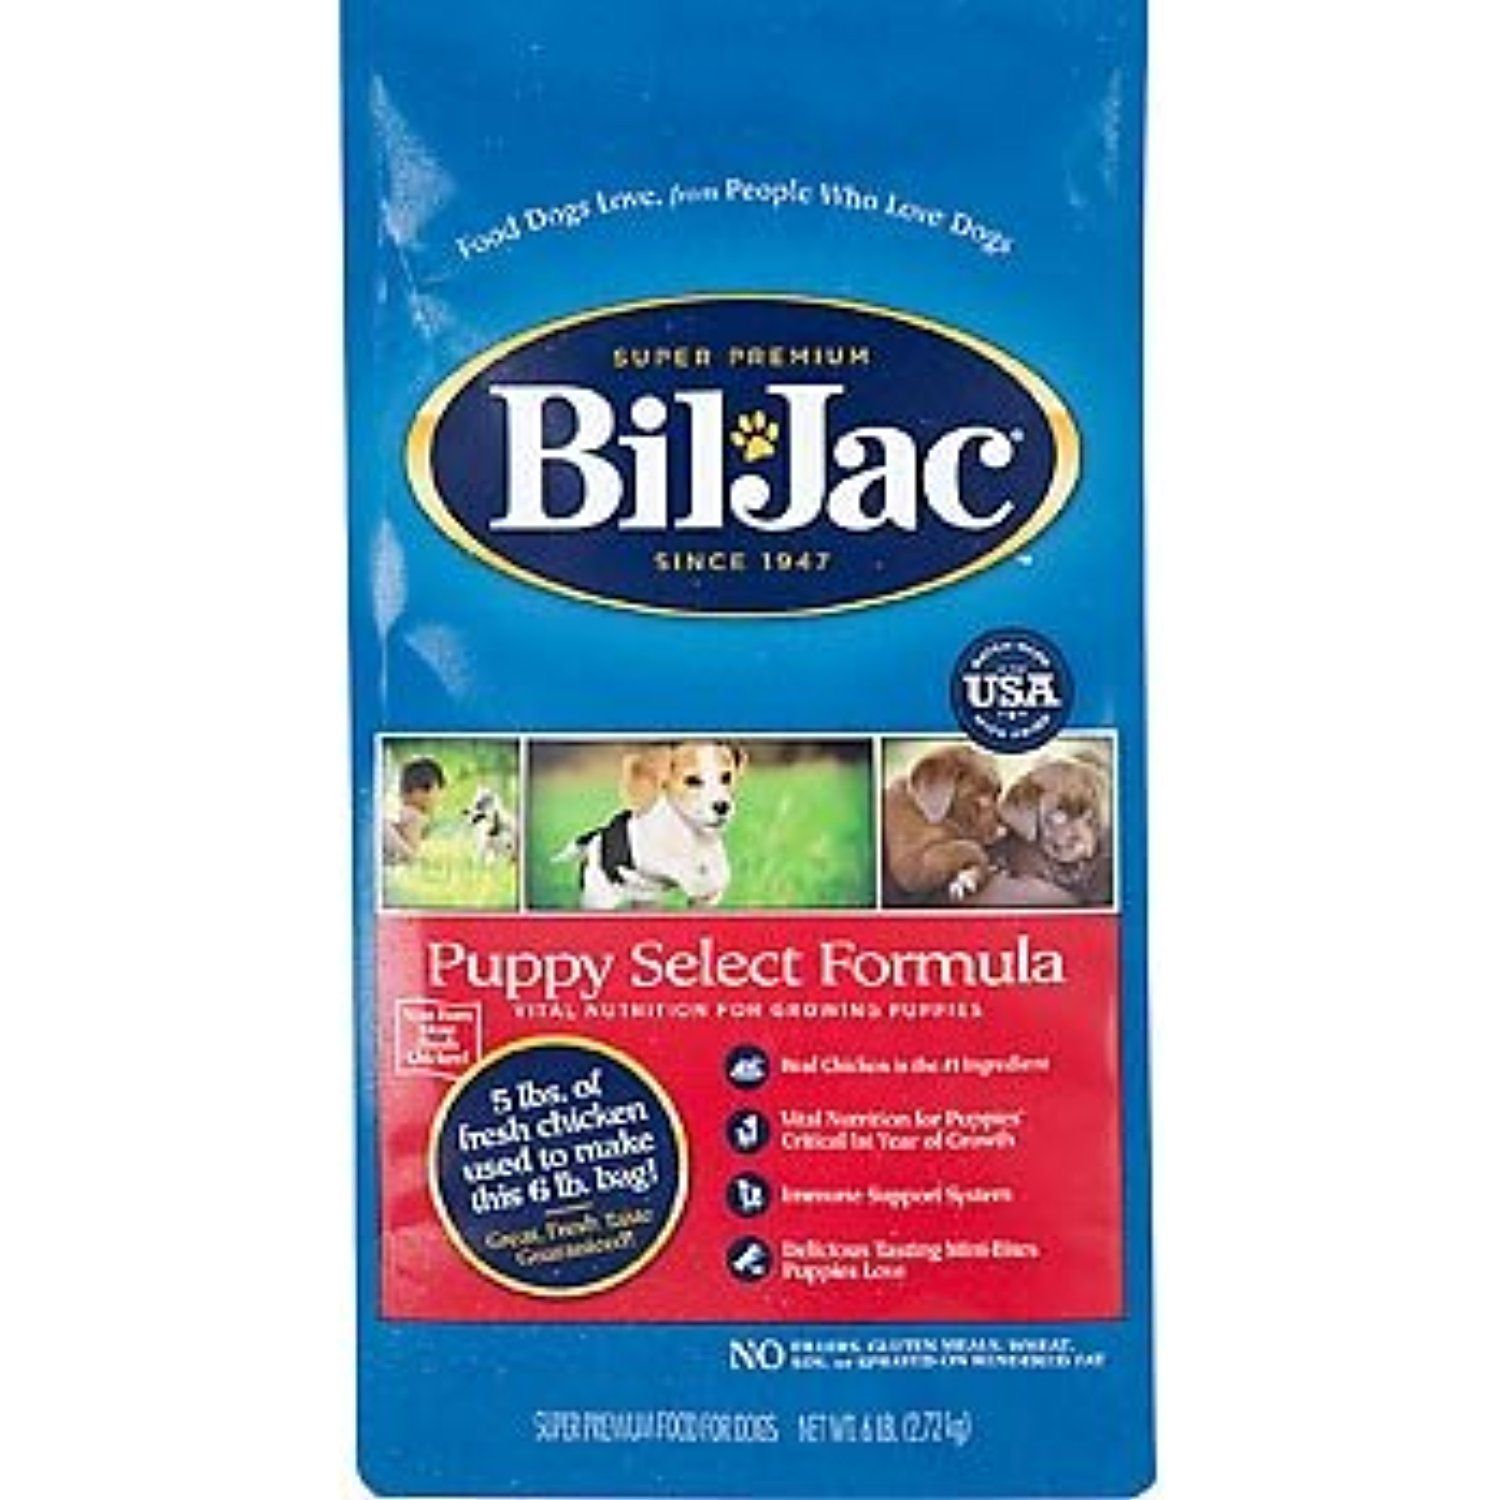 BilJac Puppy Select Formula, 6Pound If you want to